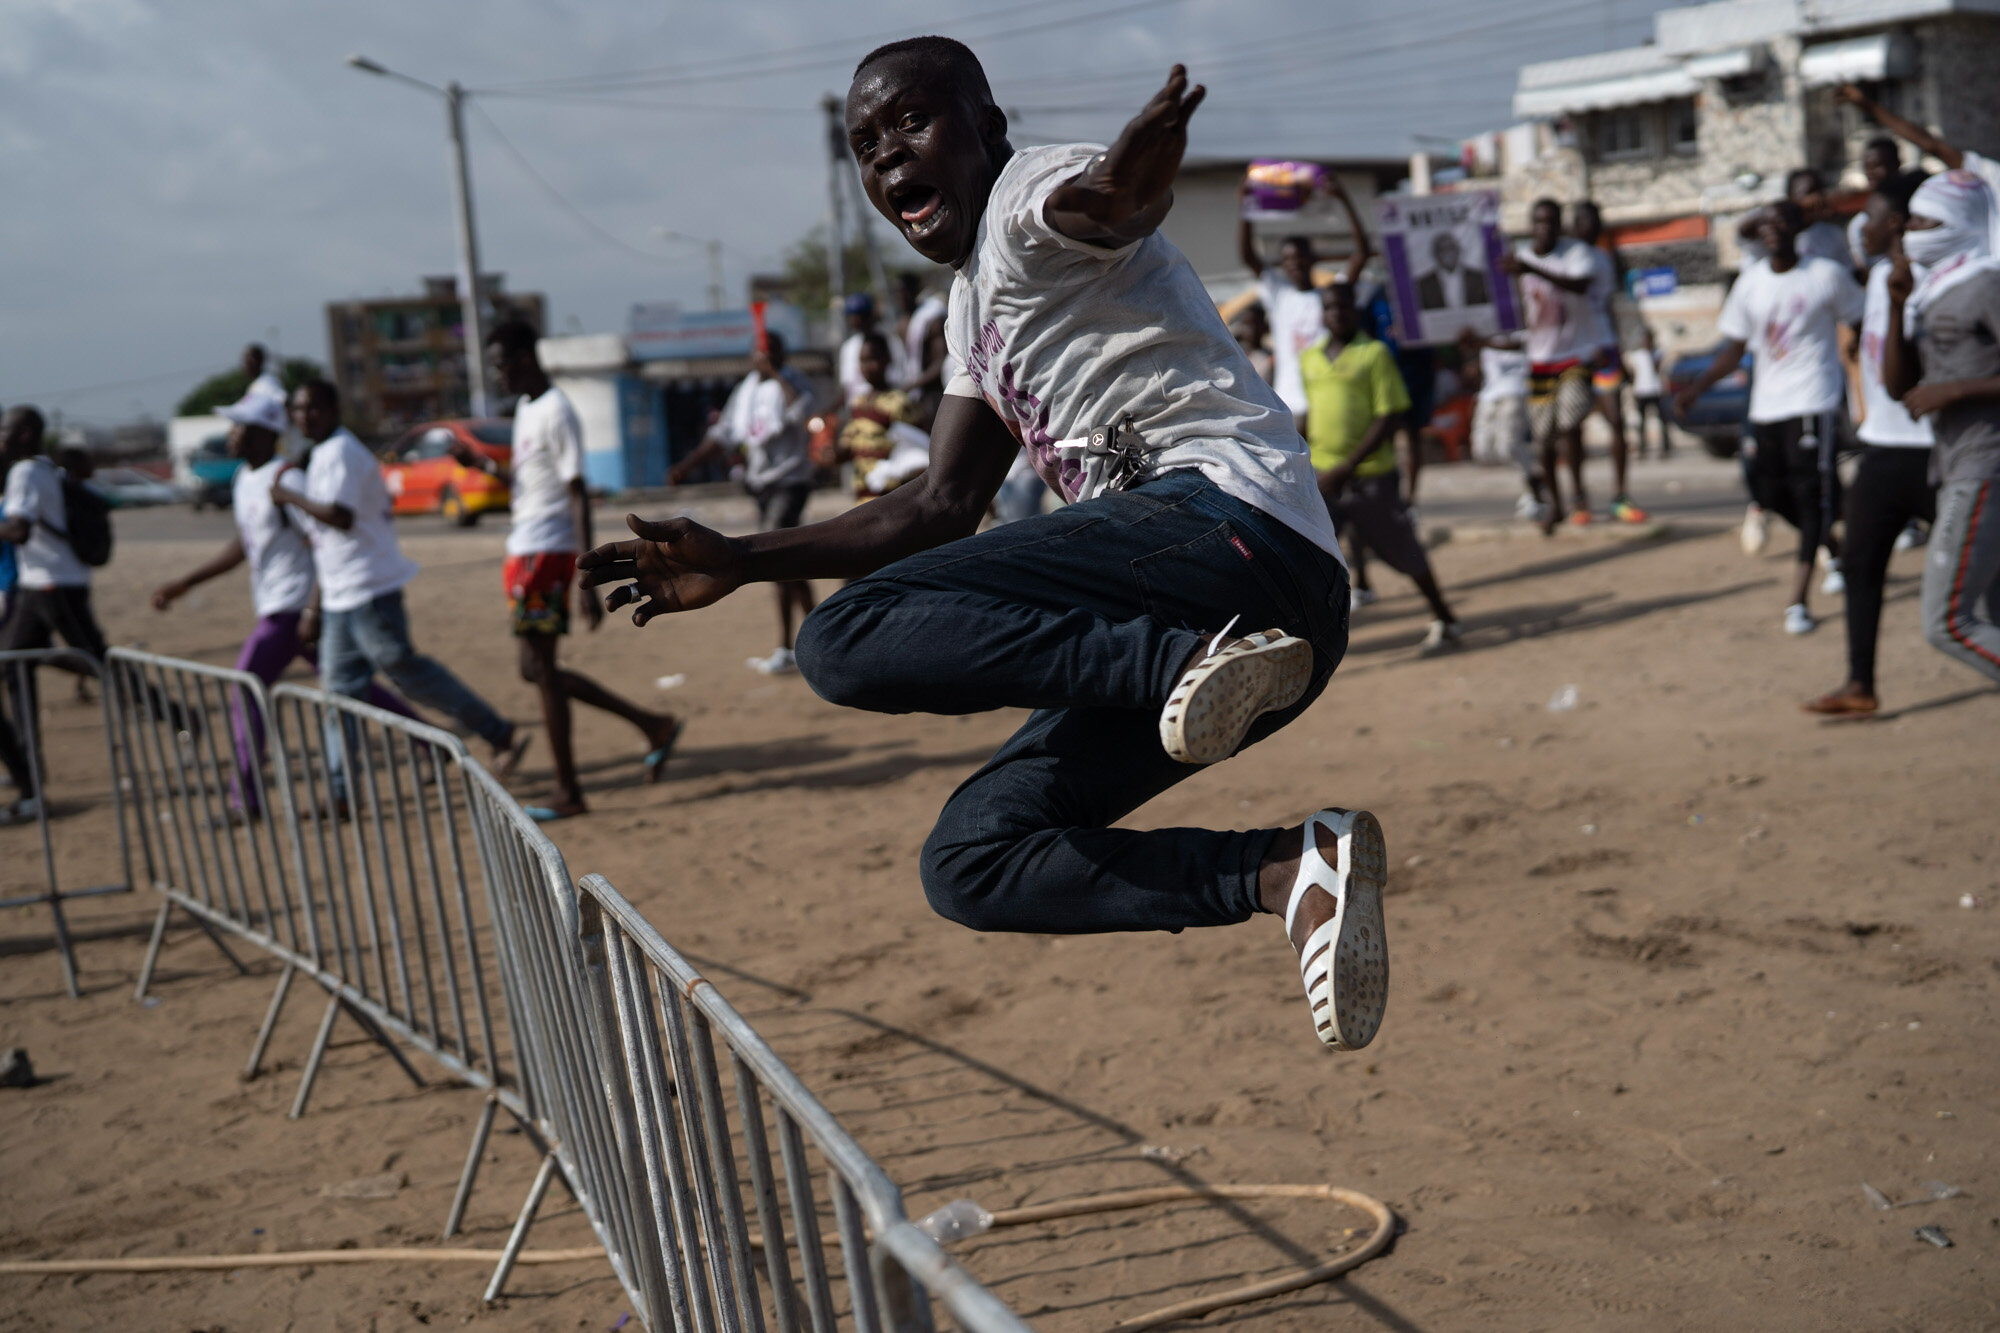 A supporter of presidential candidate Kouadio Konan Bertin jumps a fence as he arrives at Bertin's final campaign rally in Abidjan, Ivory Coast, on Oct. 29, 2020, ahead of the Oct. 31 election. (AP Photo/Leo Correa)